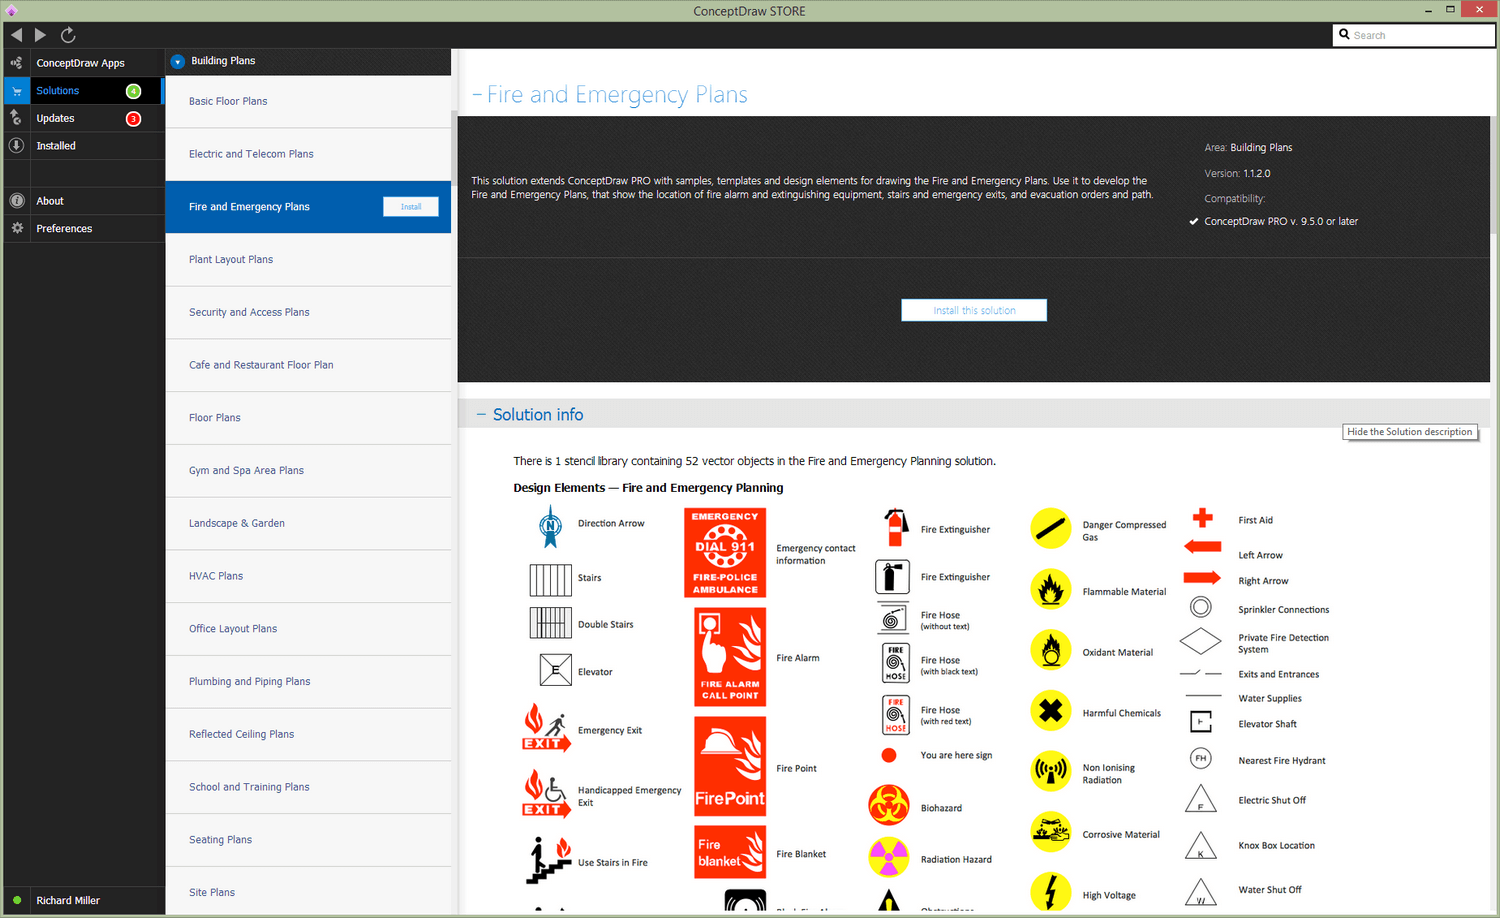 www.conceptdraw.com/solution-park/resource/images/...